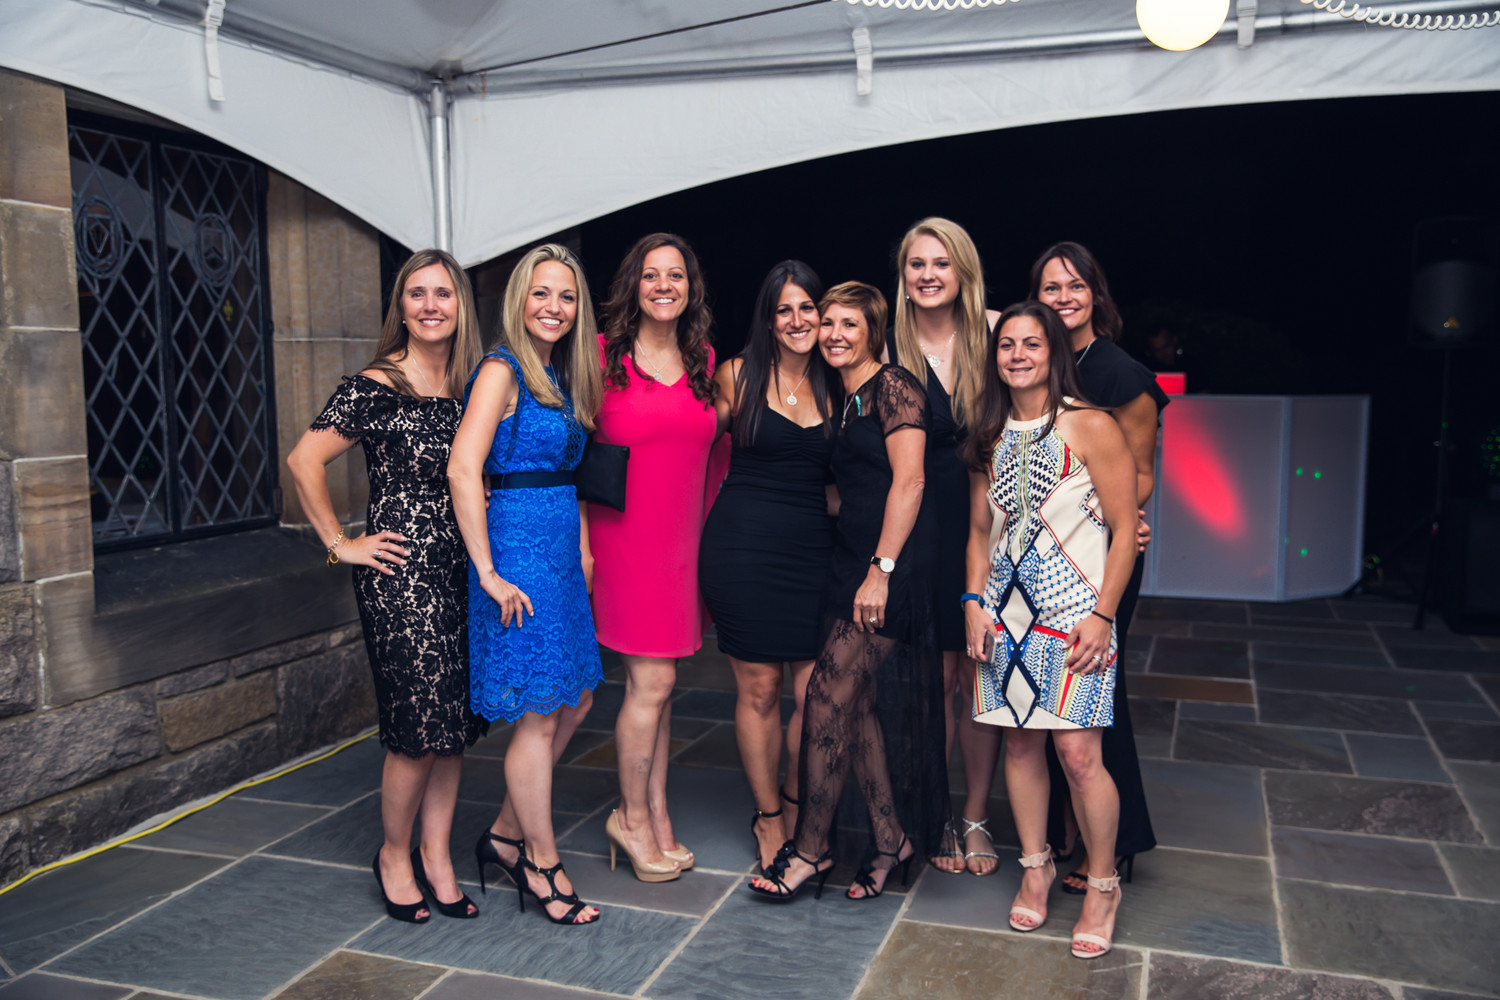 YOLO Strong's board of directors, above, at the organization's first fundraiser gala on June 15.